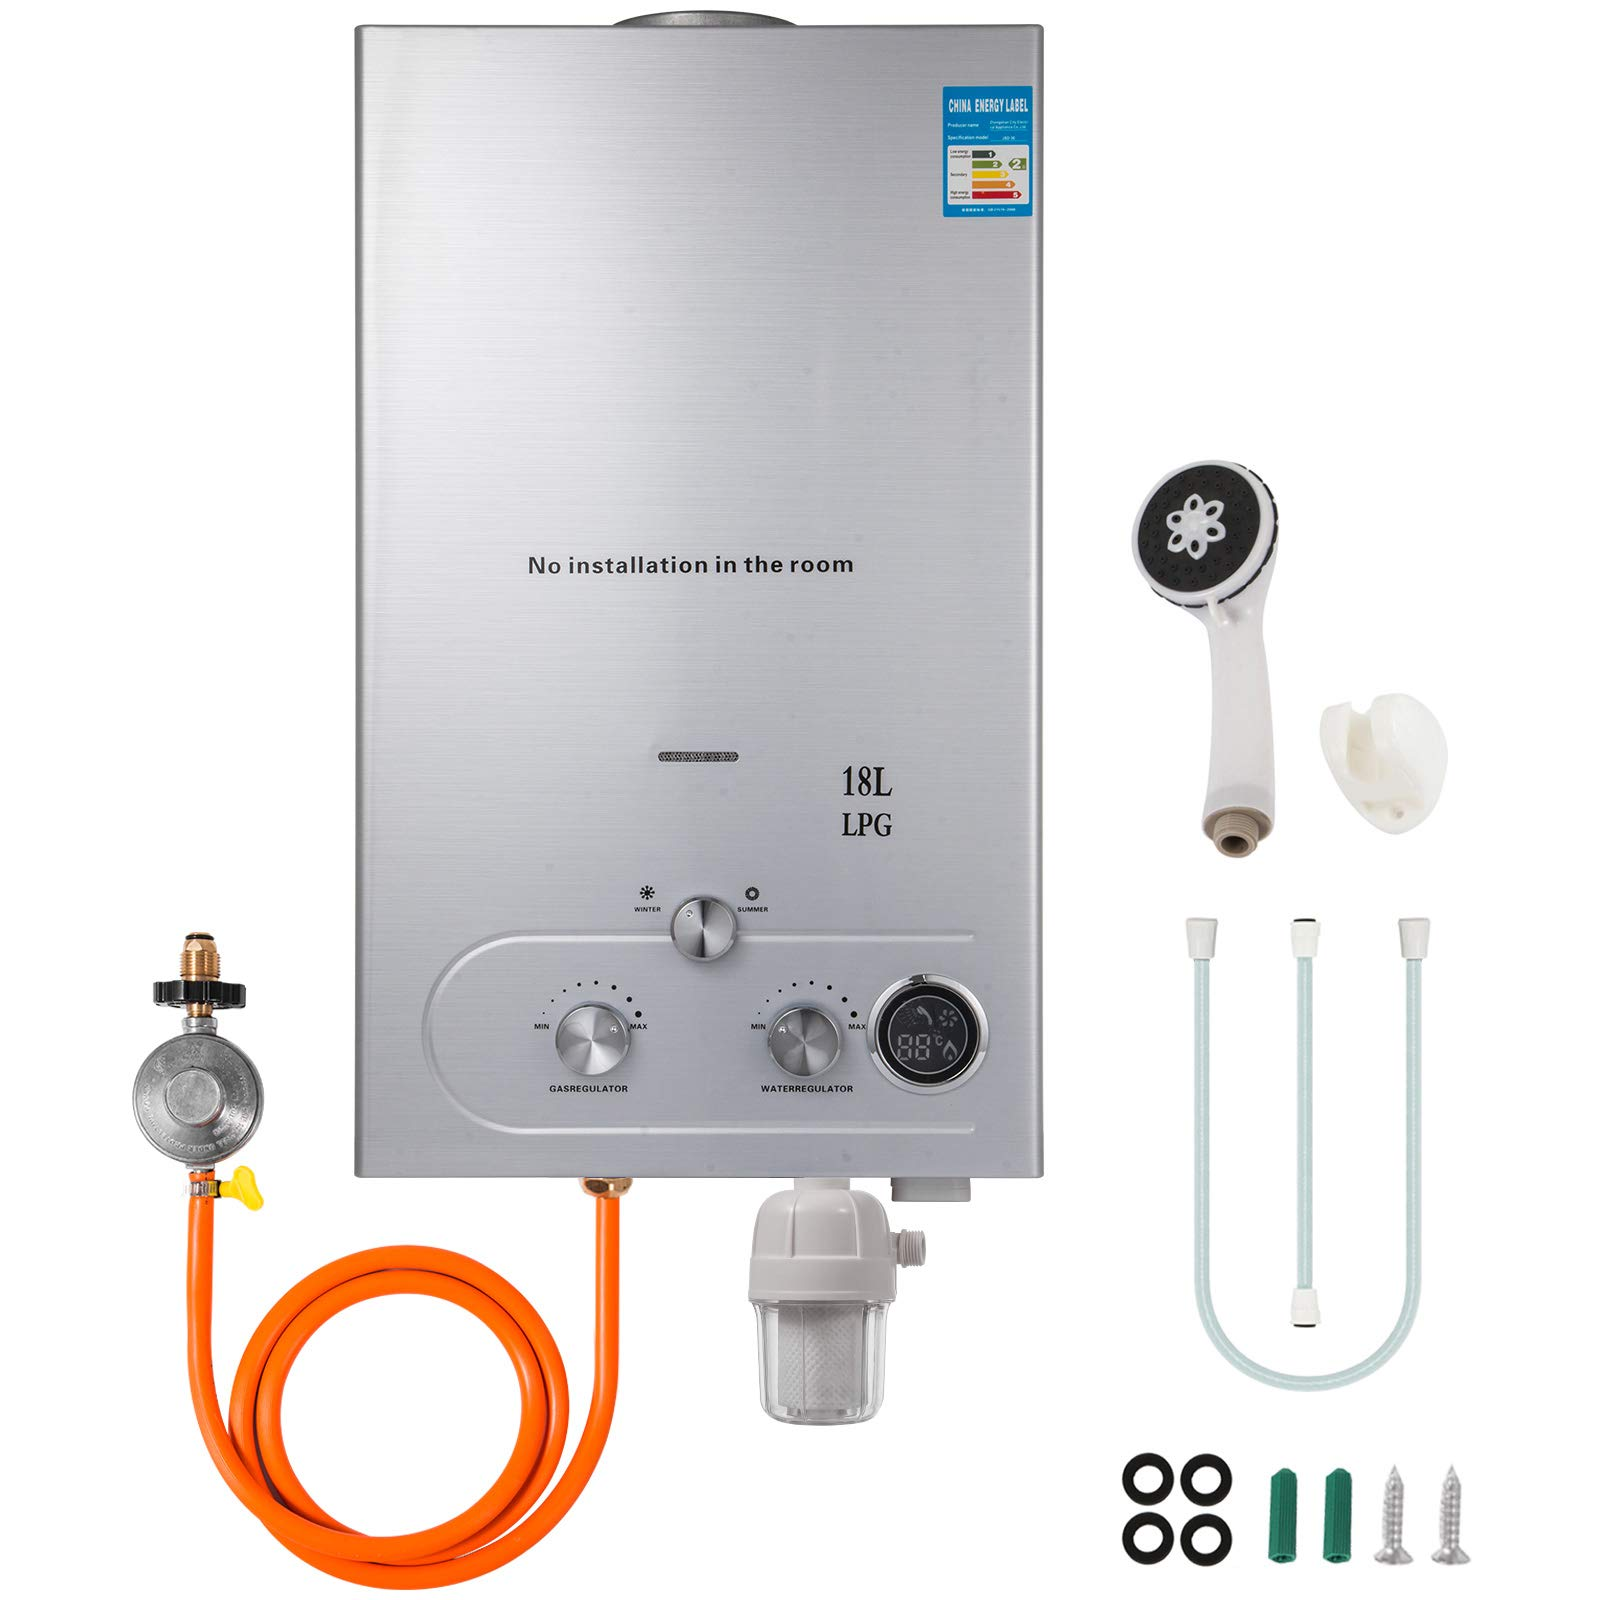 Happybuy Propane Hot Water Heater 18l Tankless Propane Water Heater 4 8gpm Propane Tankless Water Heater 36kw Upgrade Type With Shower Head Kit And Water Filter And Gas Regulator